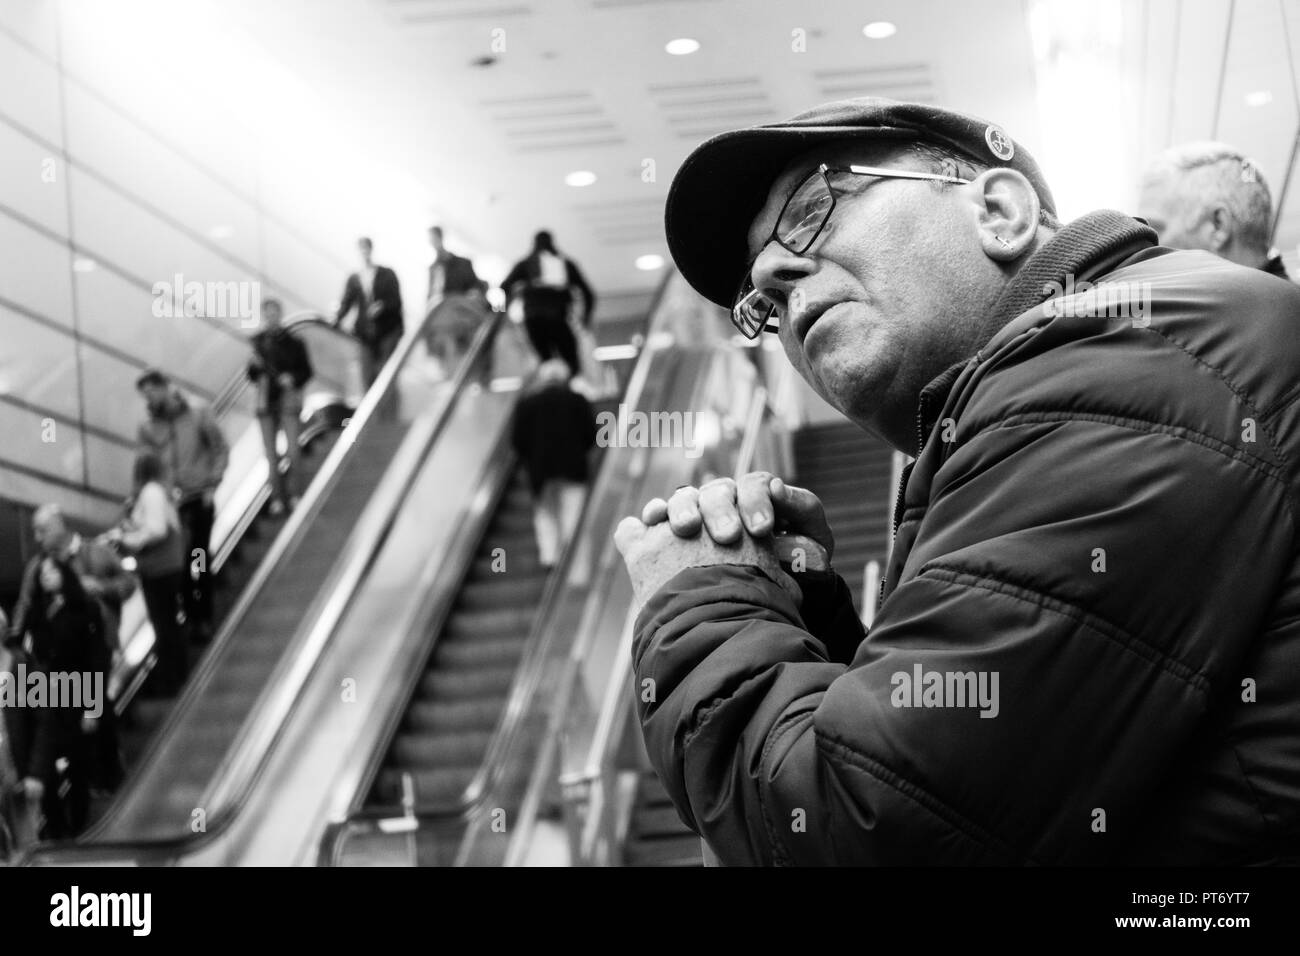 West Ham United Football Club fan waiting for a train wearing a flat cap and team badge, in black and white. Stock Photo